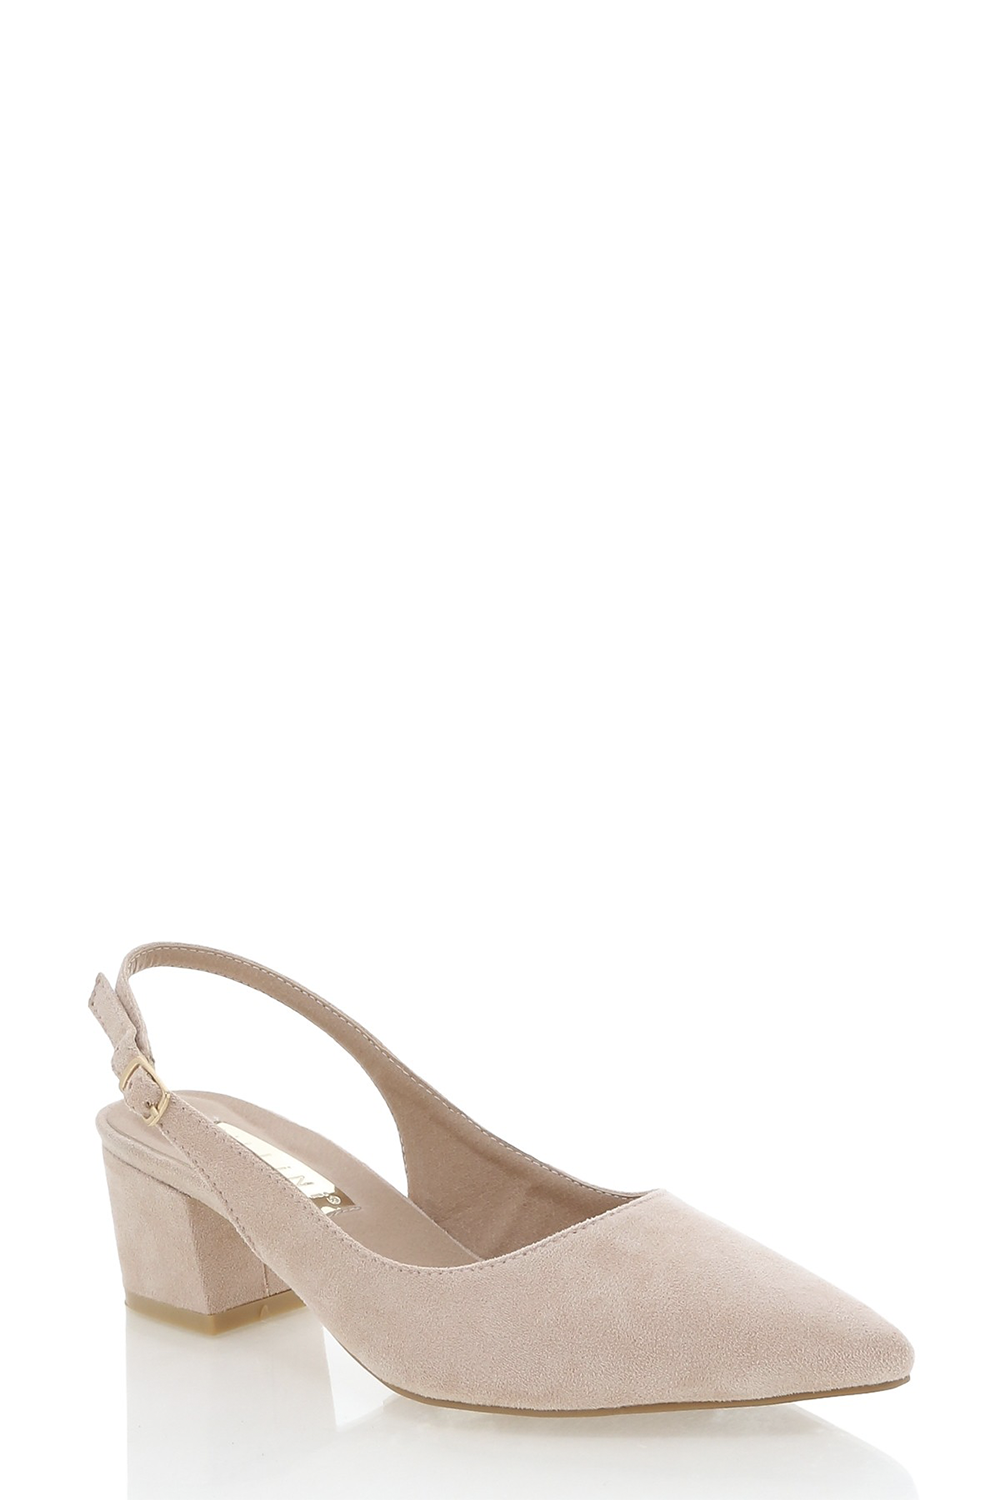 Brooke Heels by Billini in Blush Suede